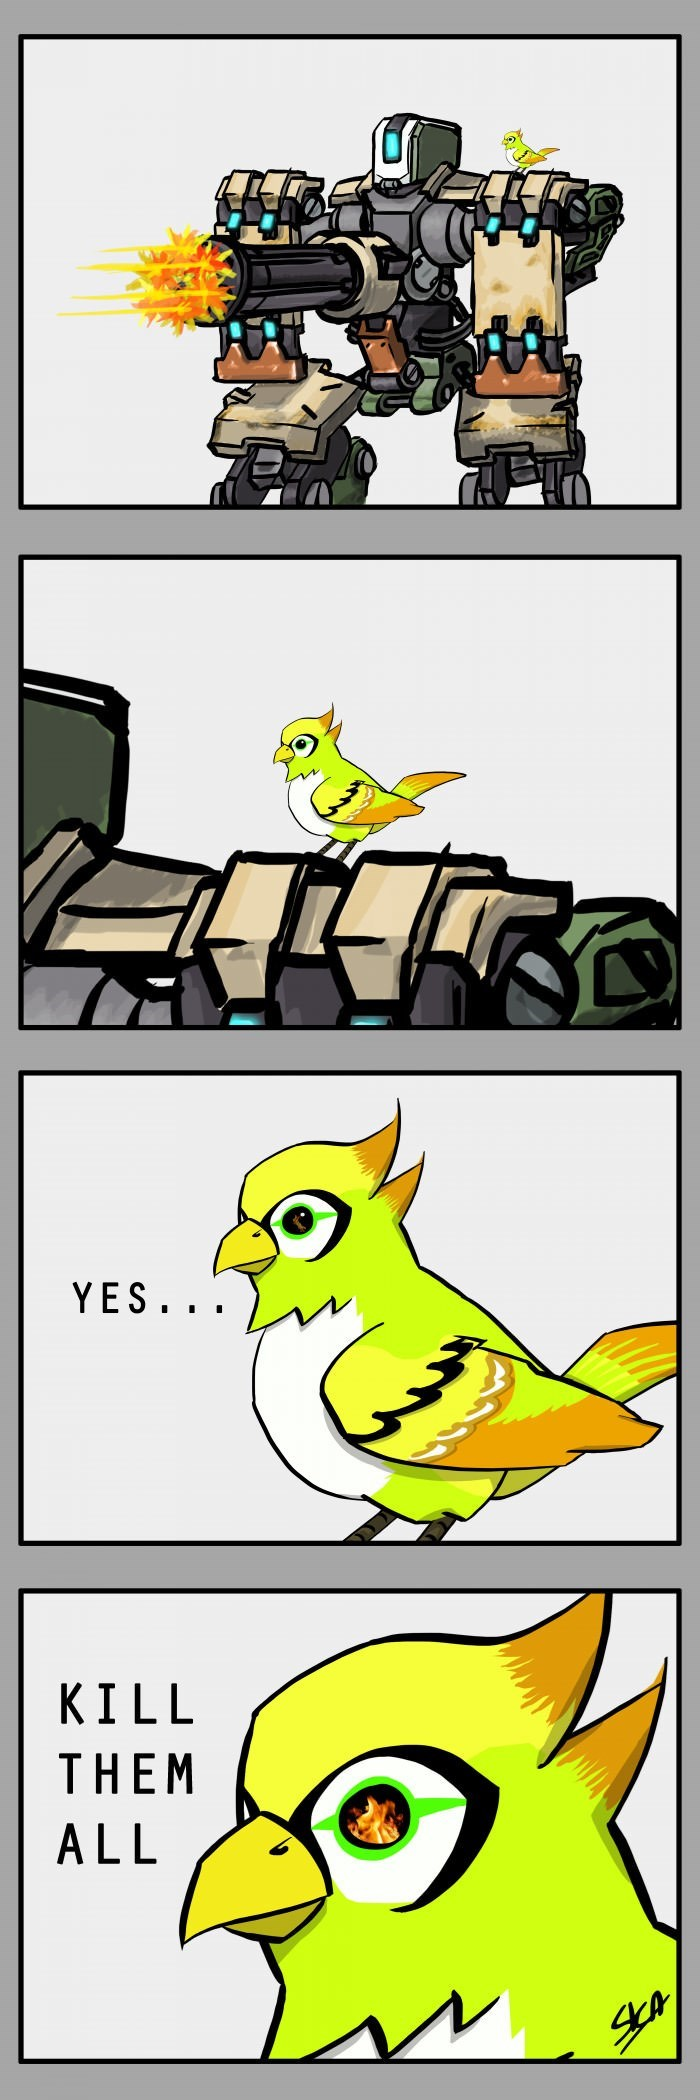 funny-bastion-bird-overwatch-video-game-theory